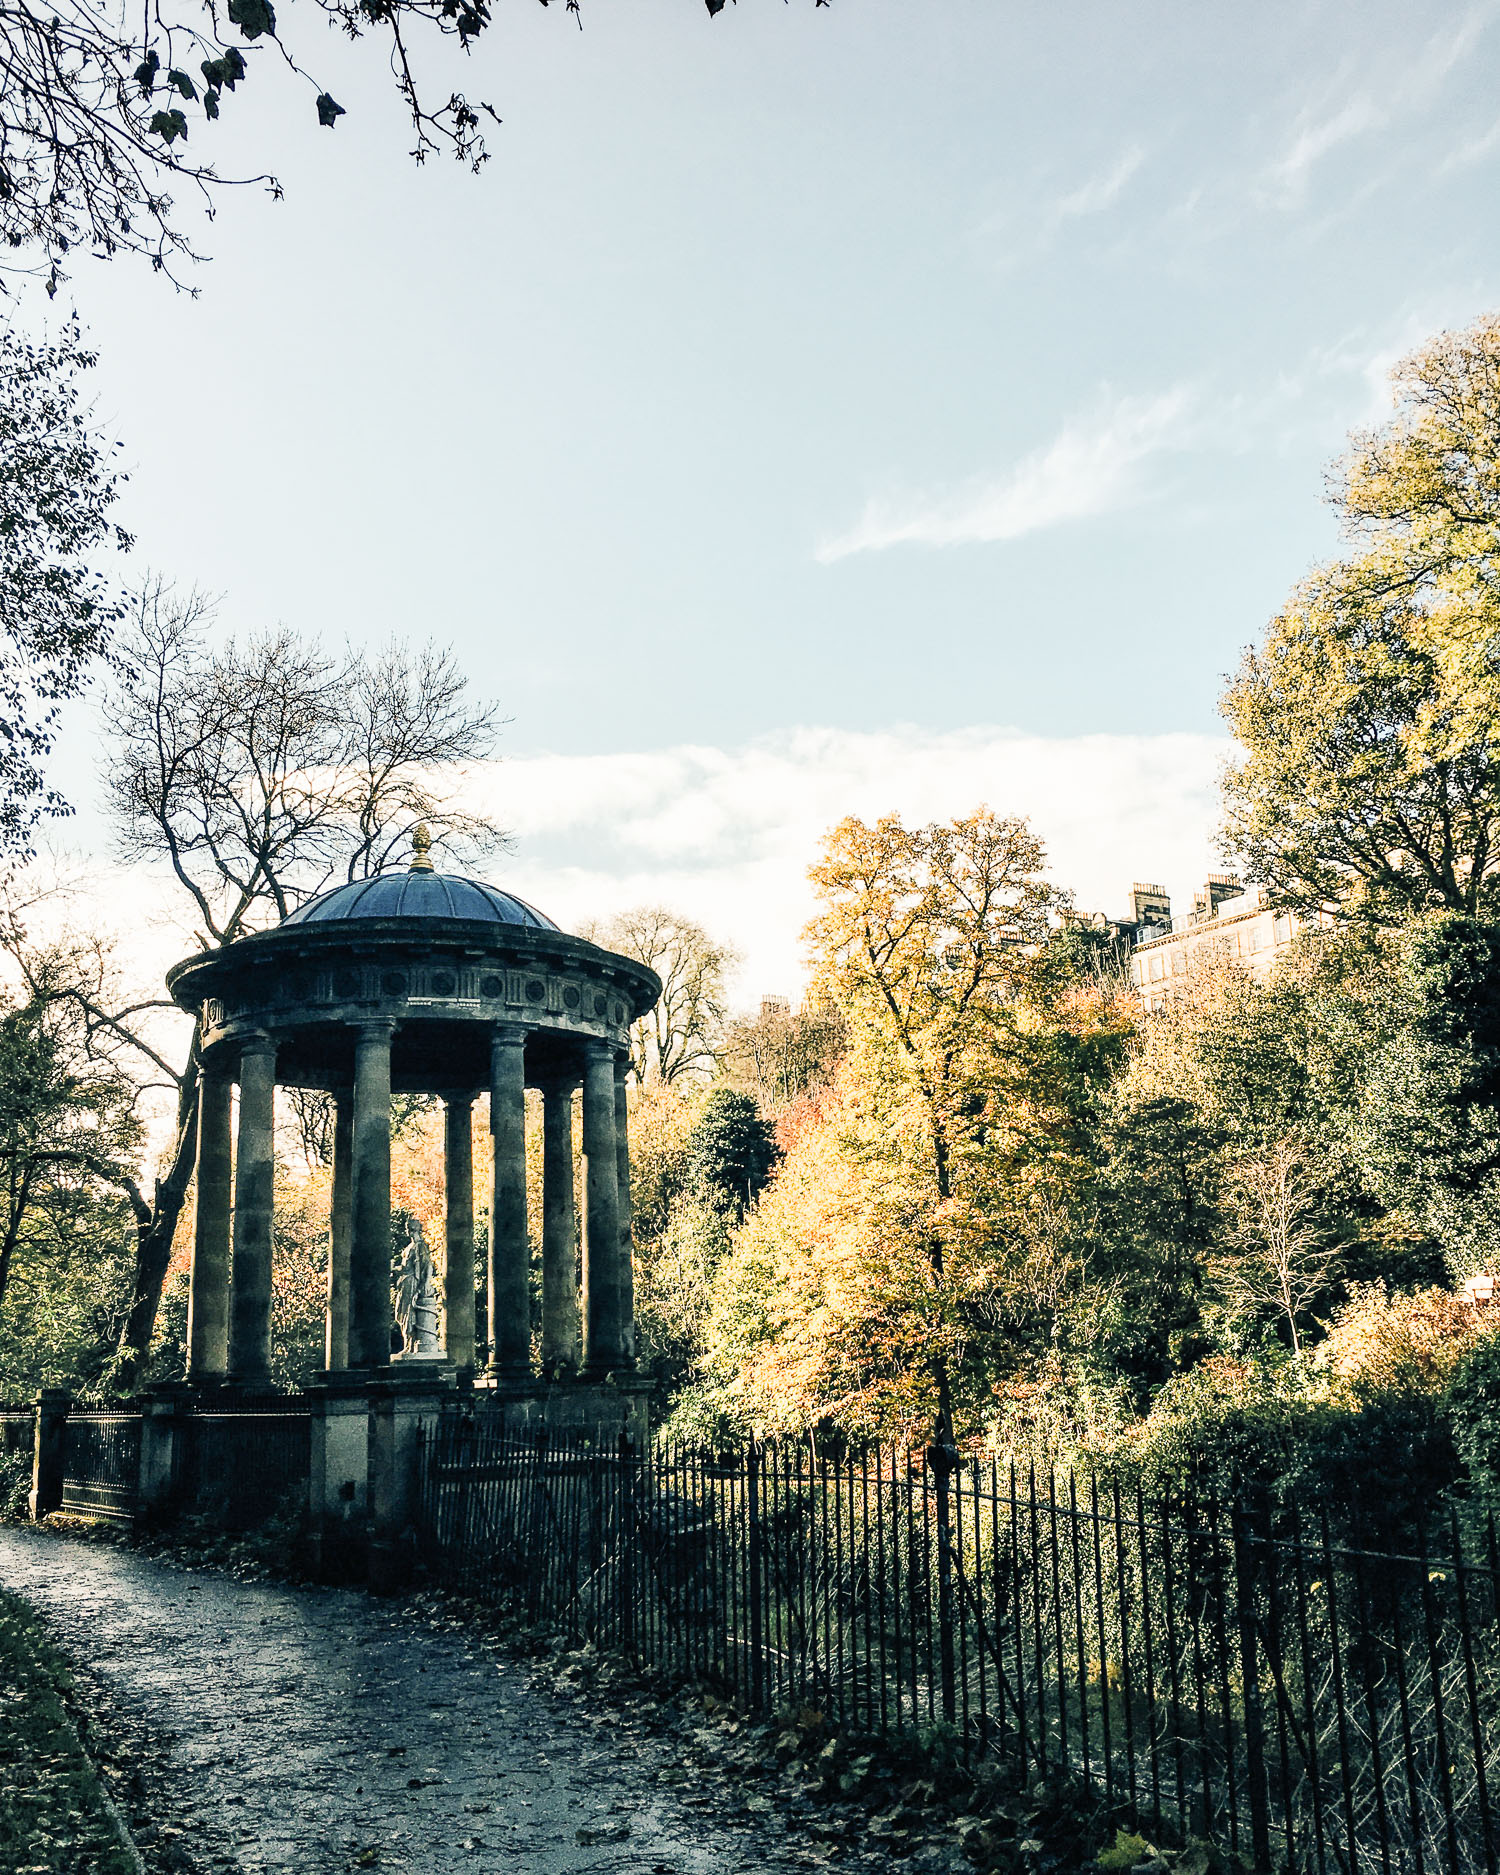 St Bernard's Well, Stockbridge